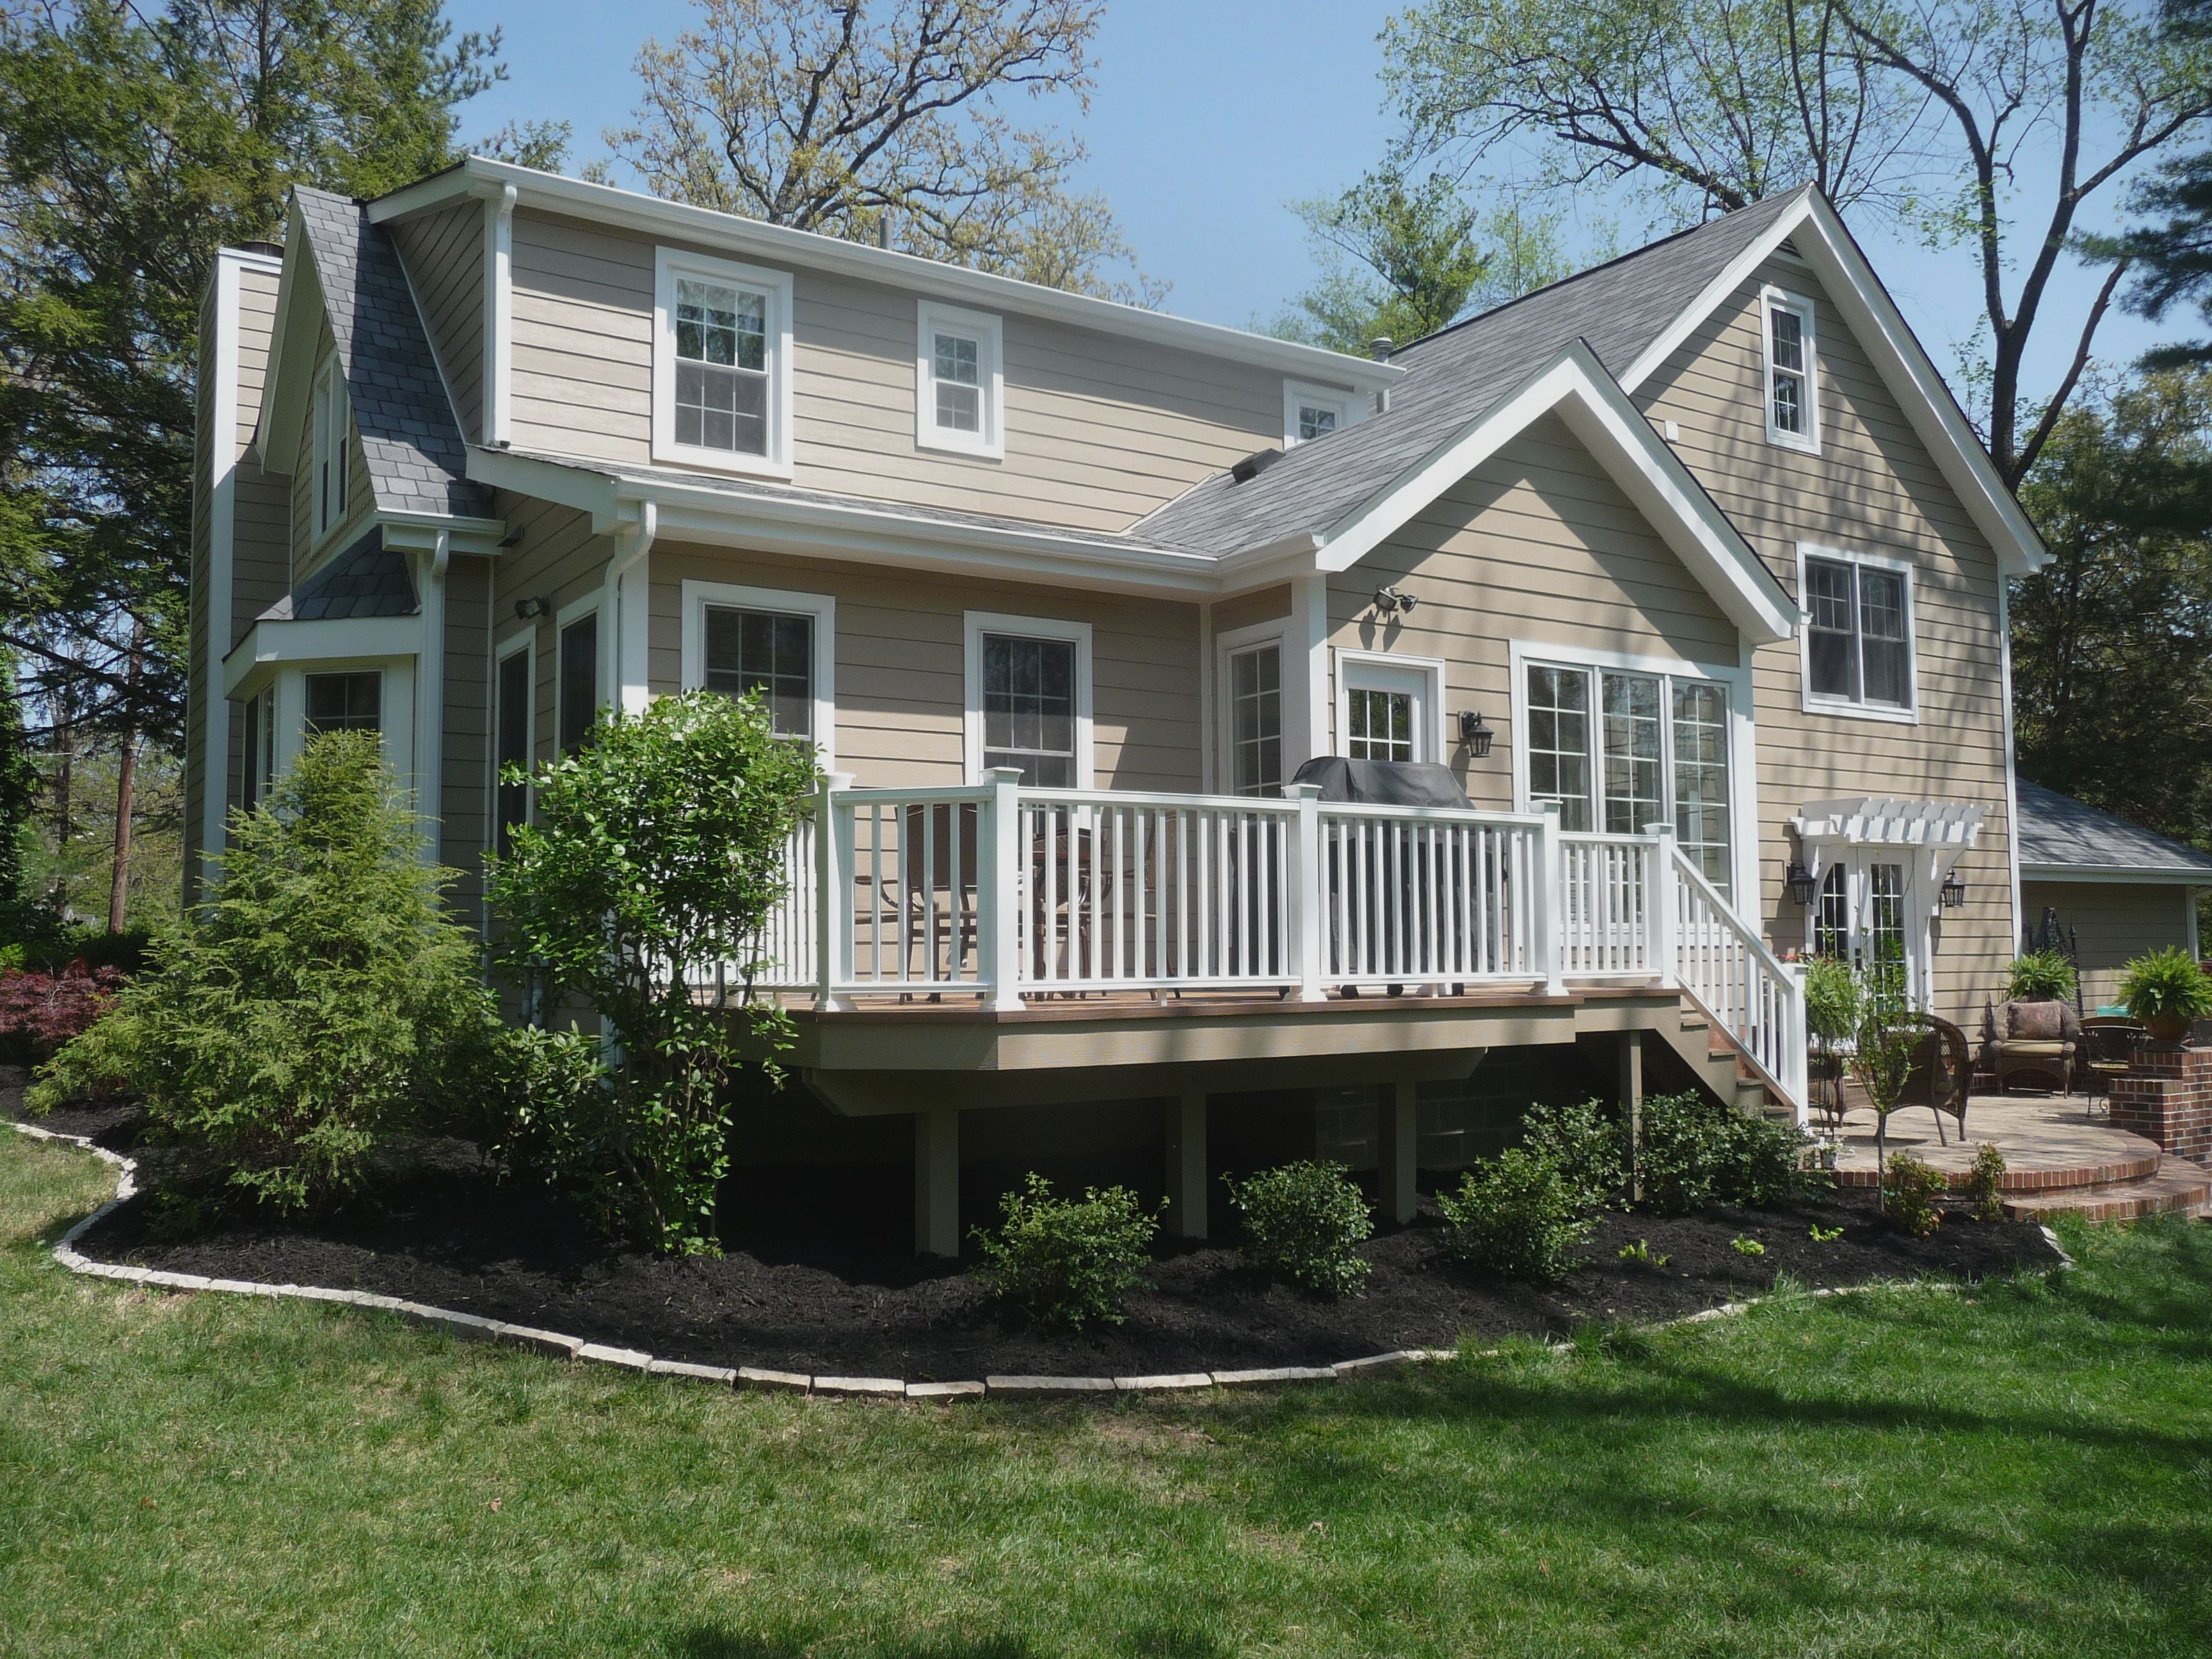 Best Images About Exterior Hardie Shingles On Pinterest - Exterior hardie board